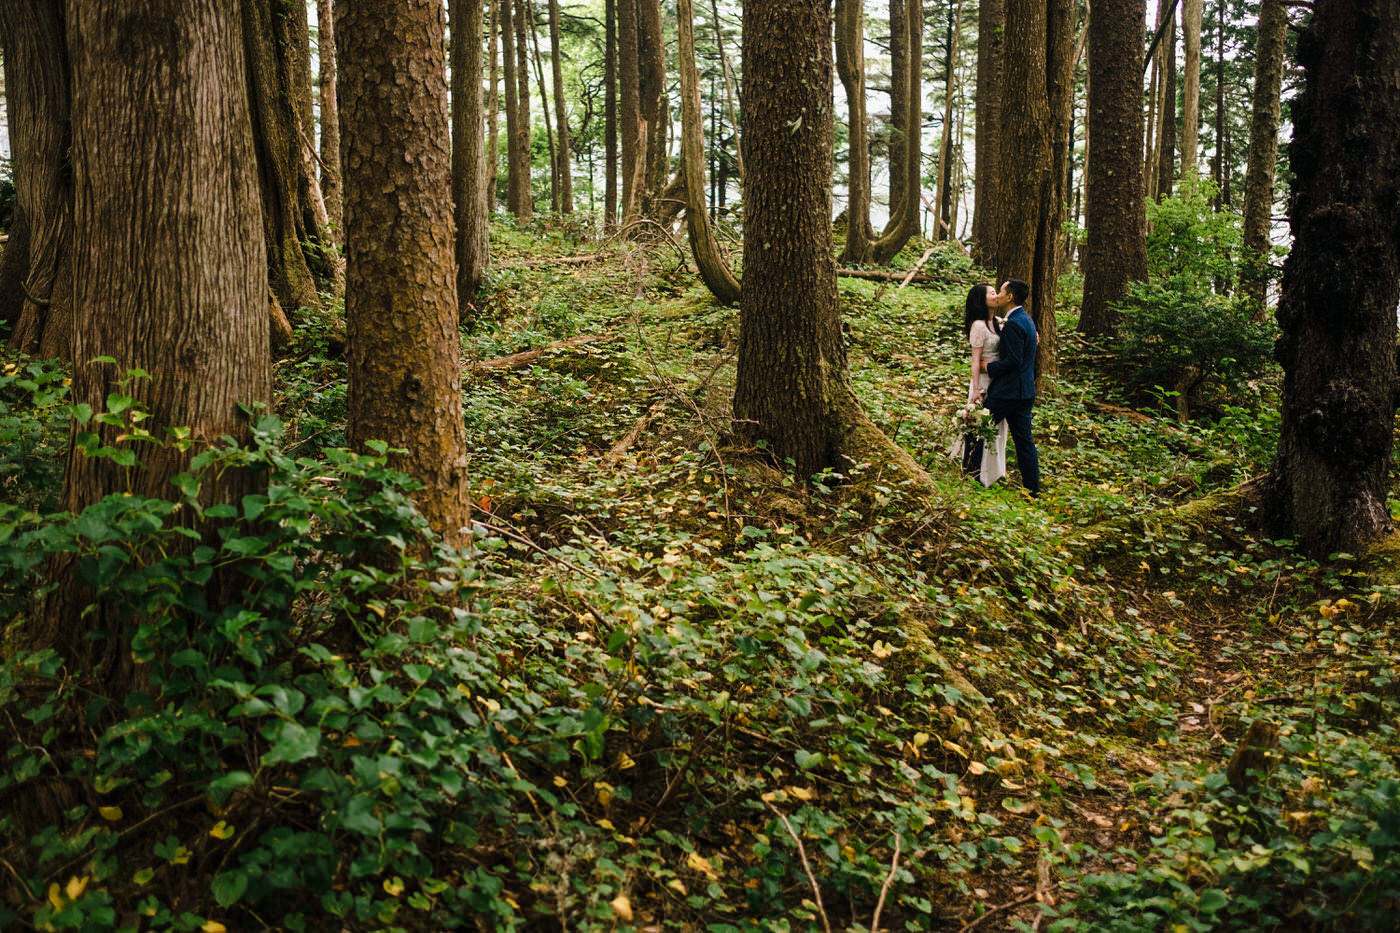 231-pacific-northwest-wedding-photography-by-ryan-flynn.jpg